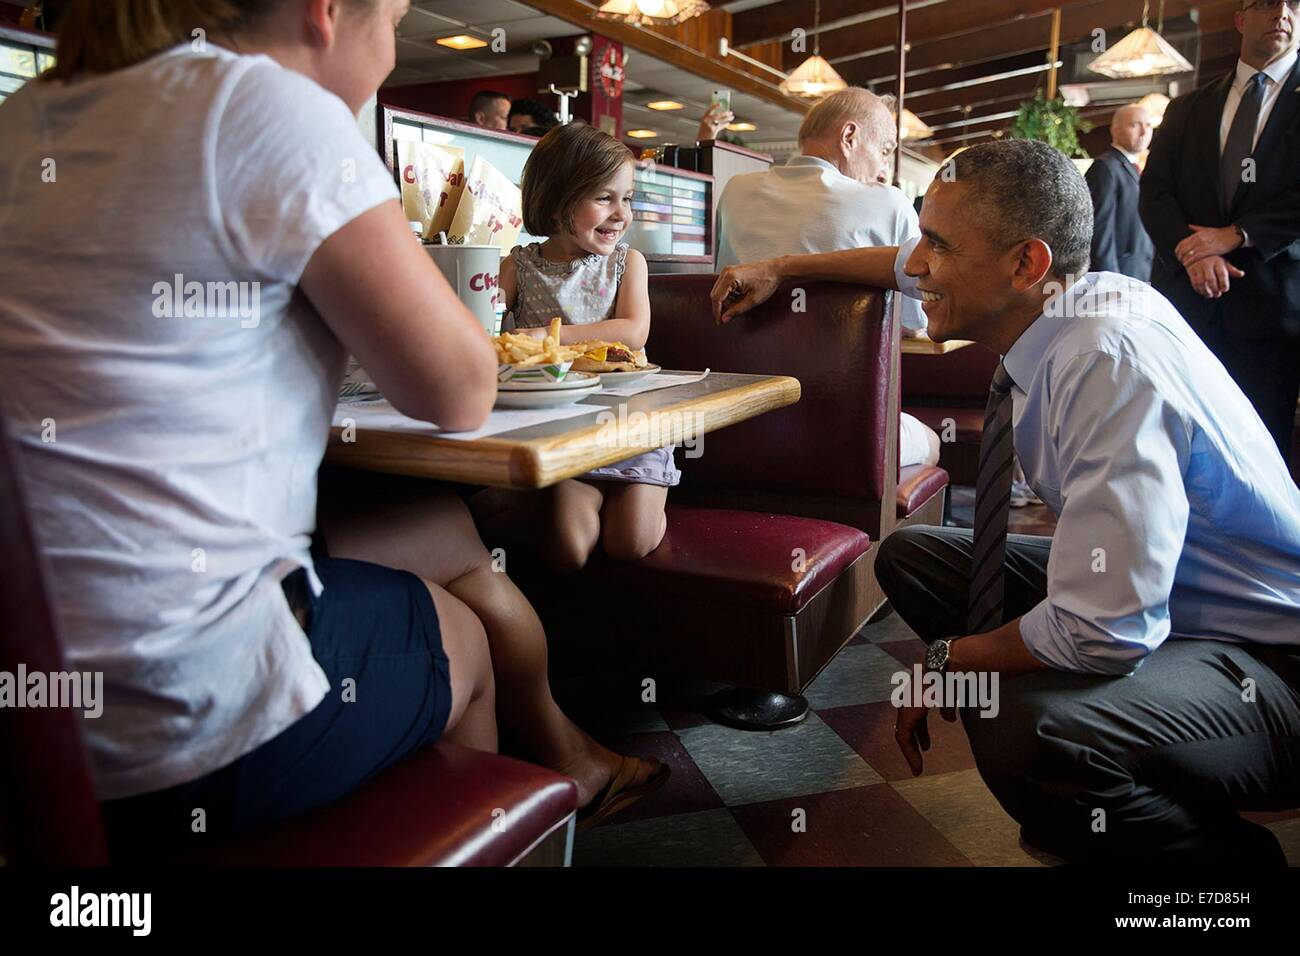 US President Barack Obama talks with a little girl at the Charcoal Pit restaurant July 17, 2014 in Wilmington, Delaware. Stock Photo